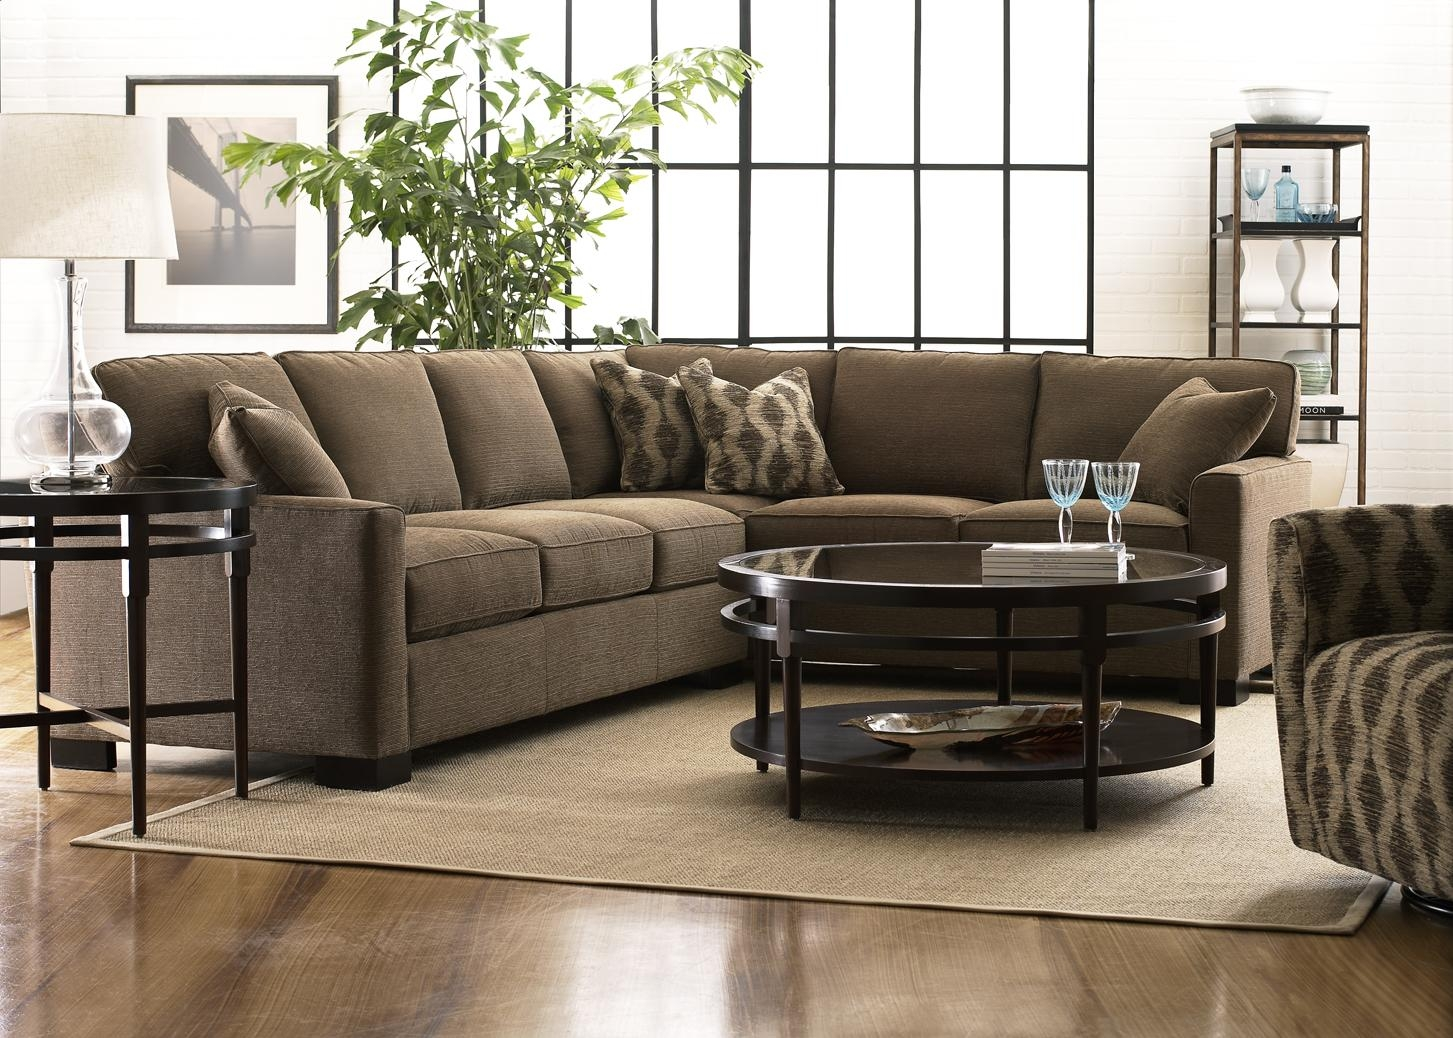 Style Loveseats For Small Spaces — Interior Exterior Homie For Sectional Small Spaces (Image 20 of 20)